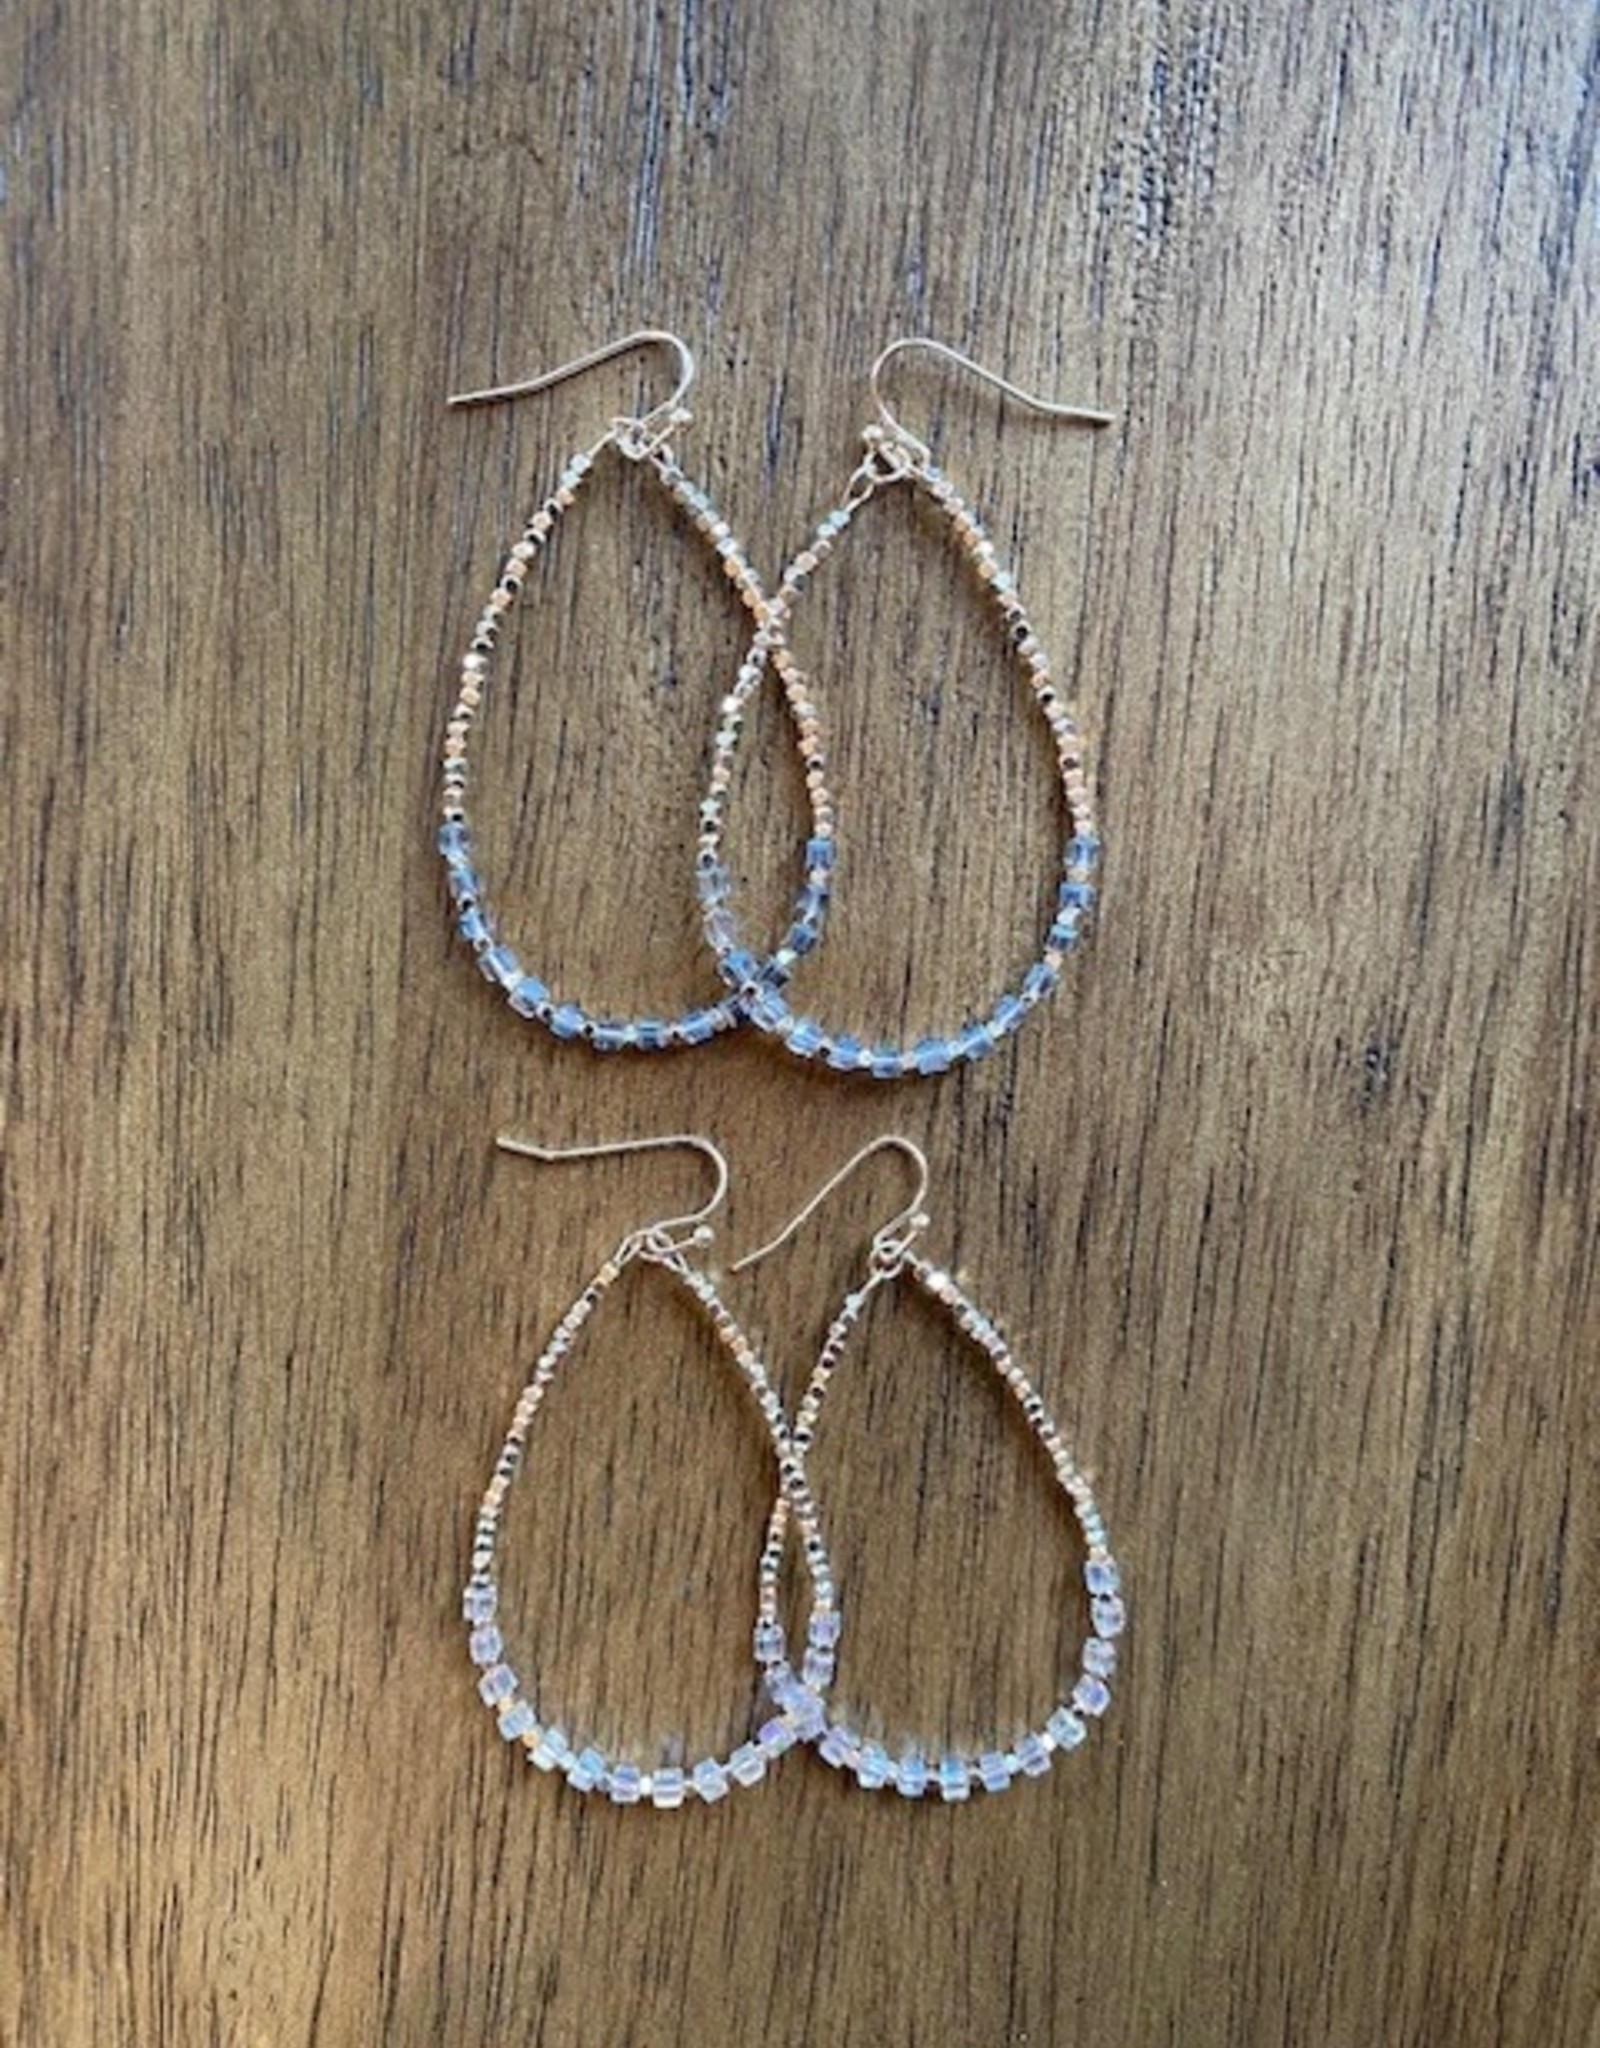 Wink Coctail Friday Night Earrings